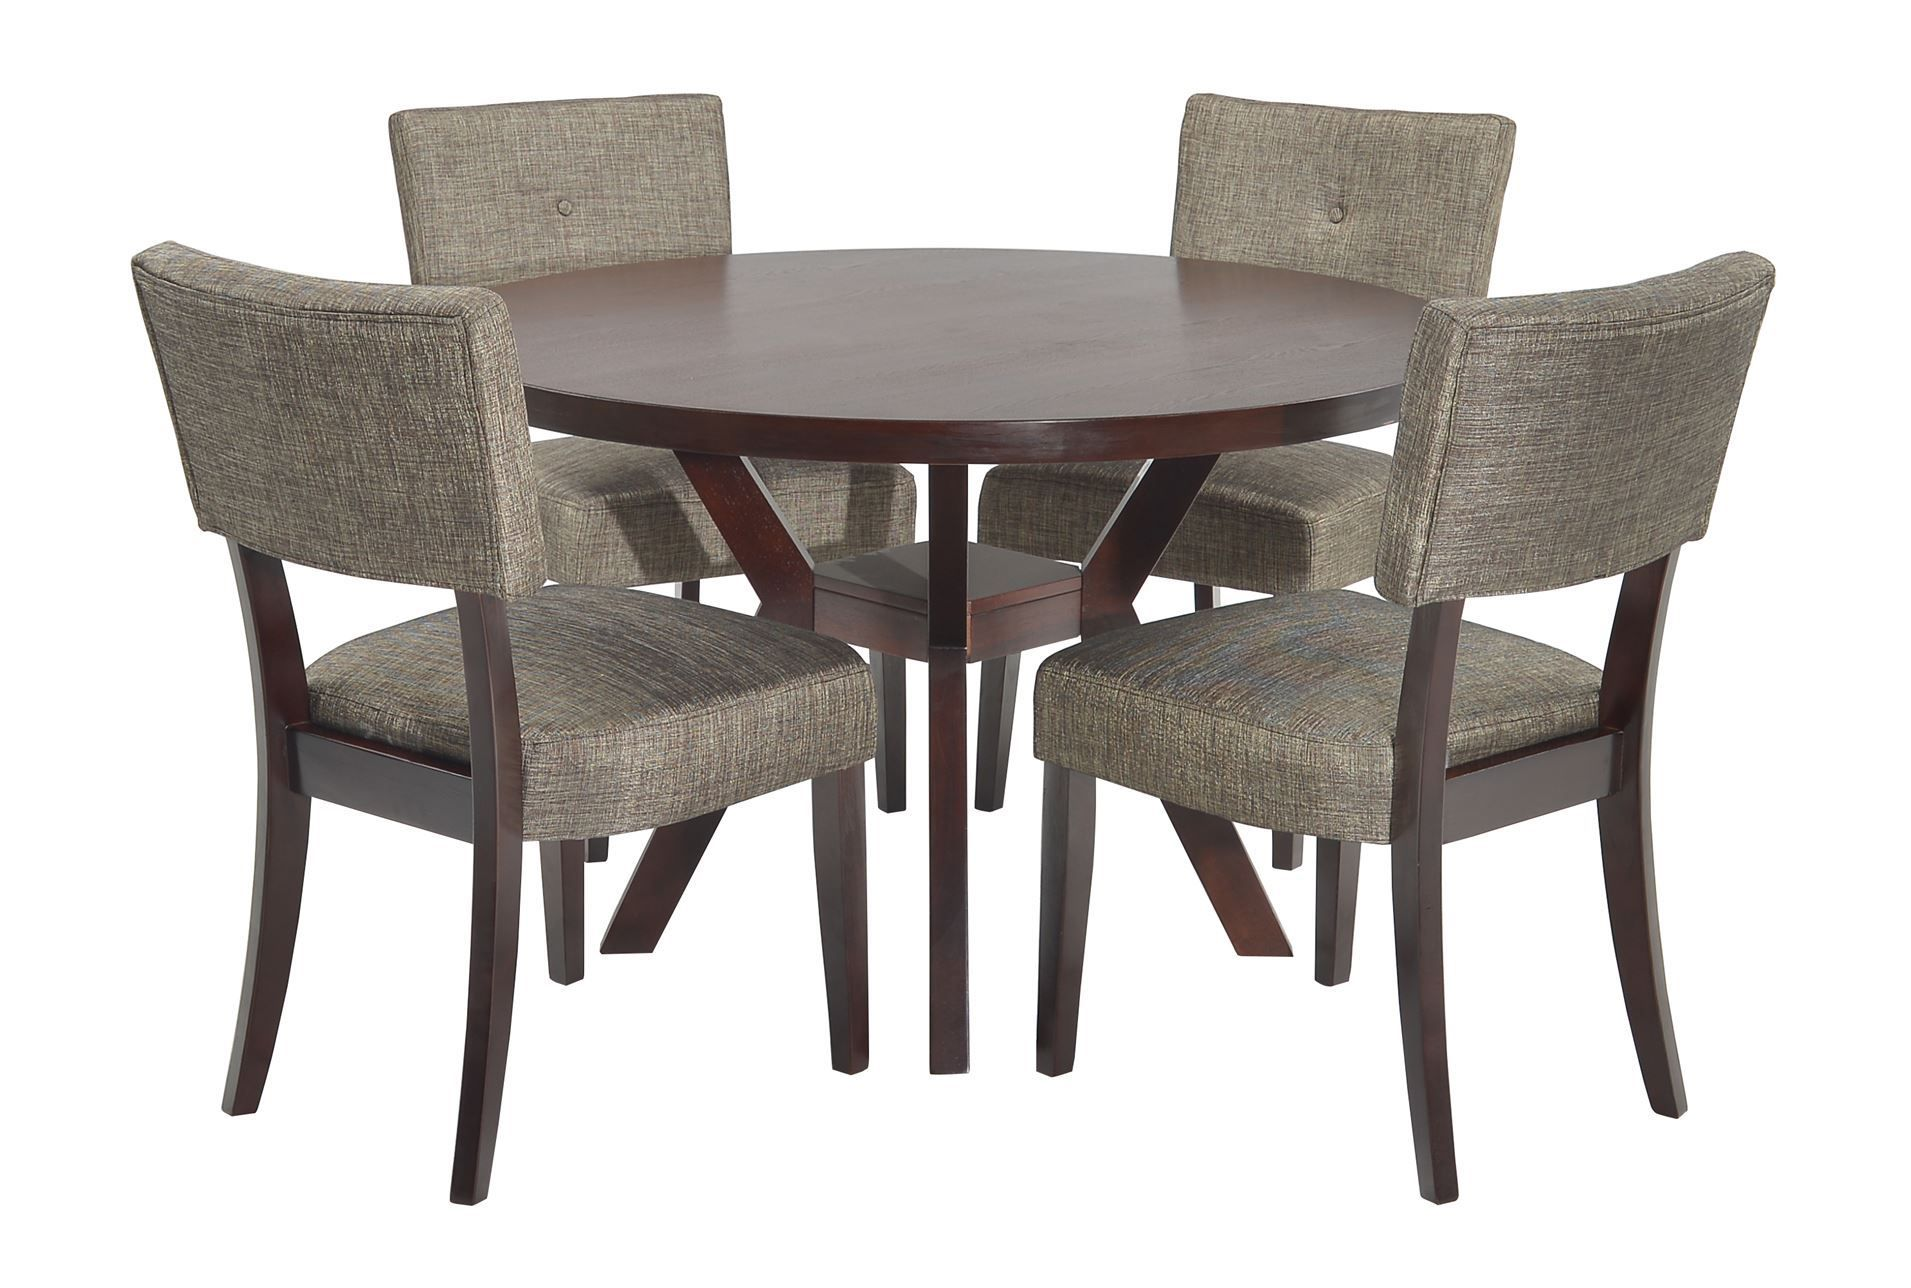 Living Spaces Dining Chairs Macie 5 Piece Round Dining Set Living Spaces New Dining